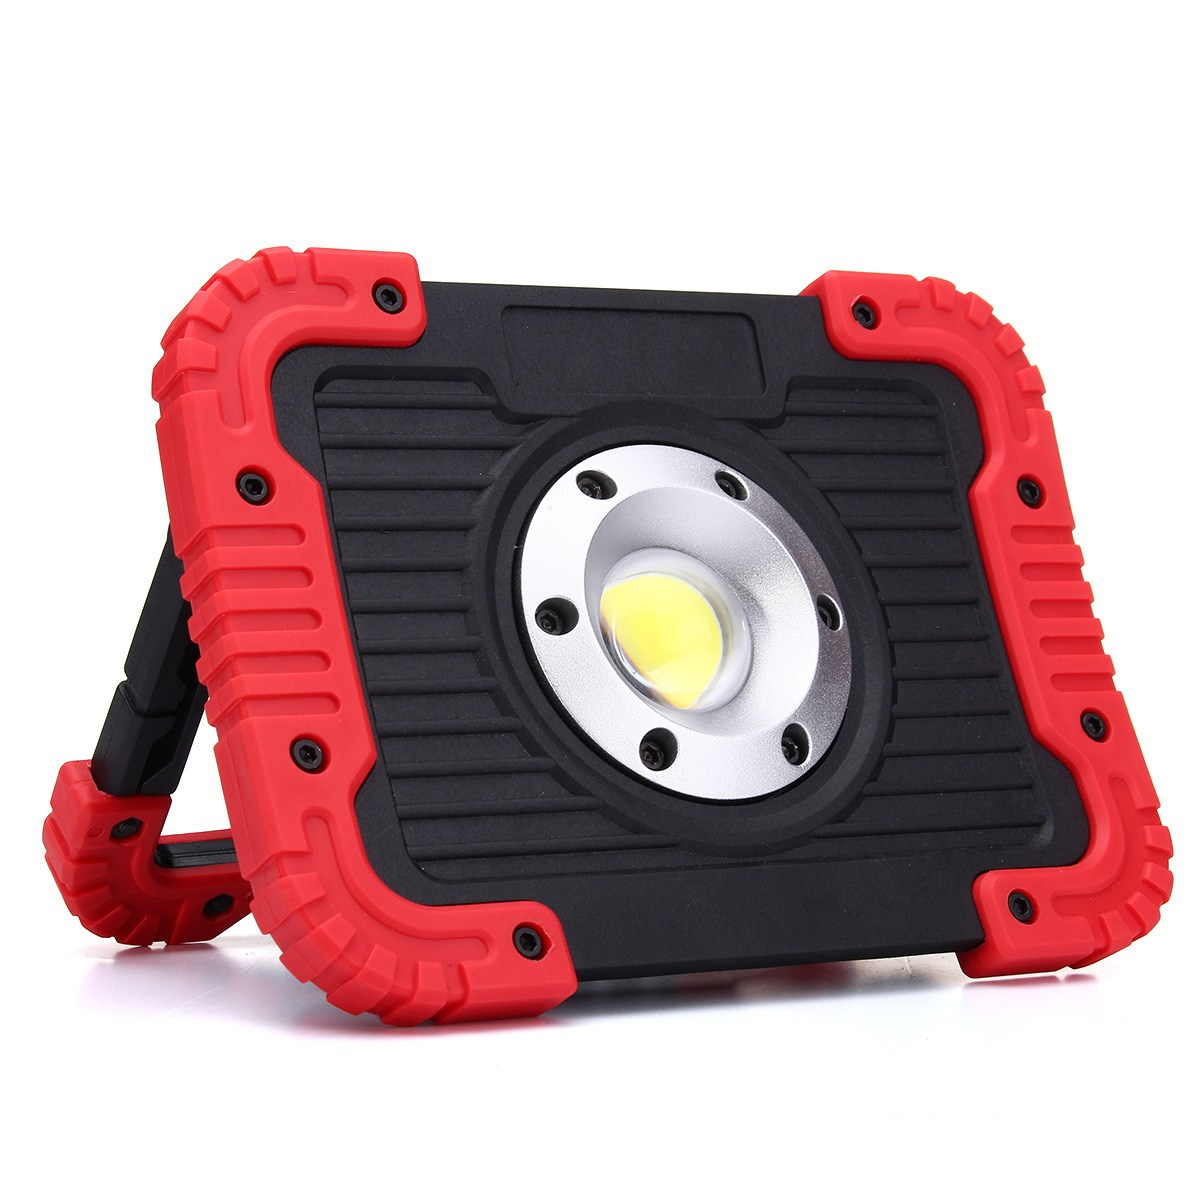 COB 20 LED Spotlight LED Work Light Rechargeable Handle Flashlight Torch Outdoor LED Floodlight Camping Lamp